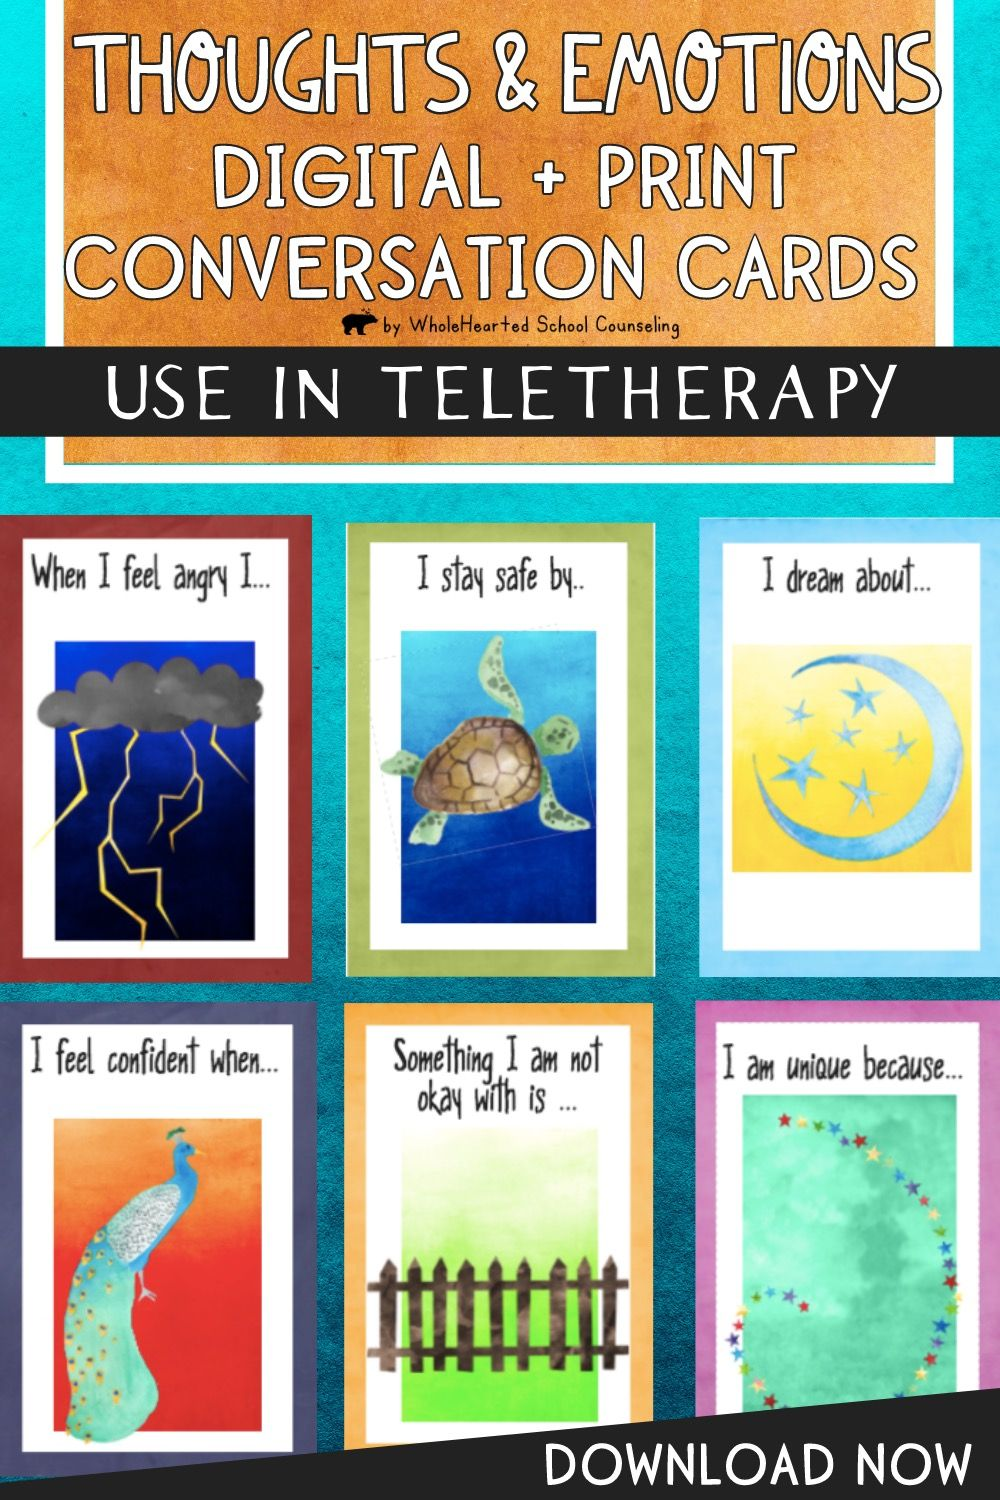 In printable AND digital distance learning ready format, this set of 52 feelings, thoughts, and emotions task cards and google slides journal prompts was designed to help counselors, educators and parents to engage children in expressing their unique voices and stories. The open-ended nature of the sentence completion prompts encourage children to identify and process what they're experiencing, feeling and thinking in their lives, be it changes with family, grief, fears, trauma, anger, goals.